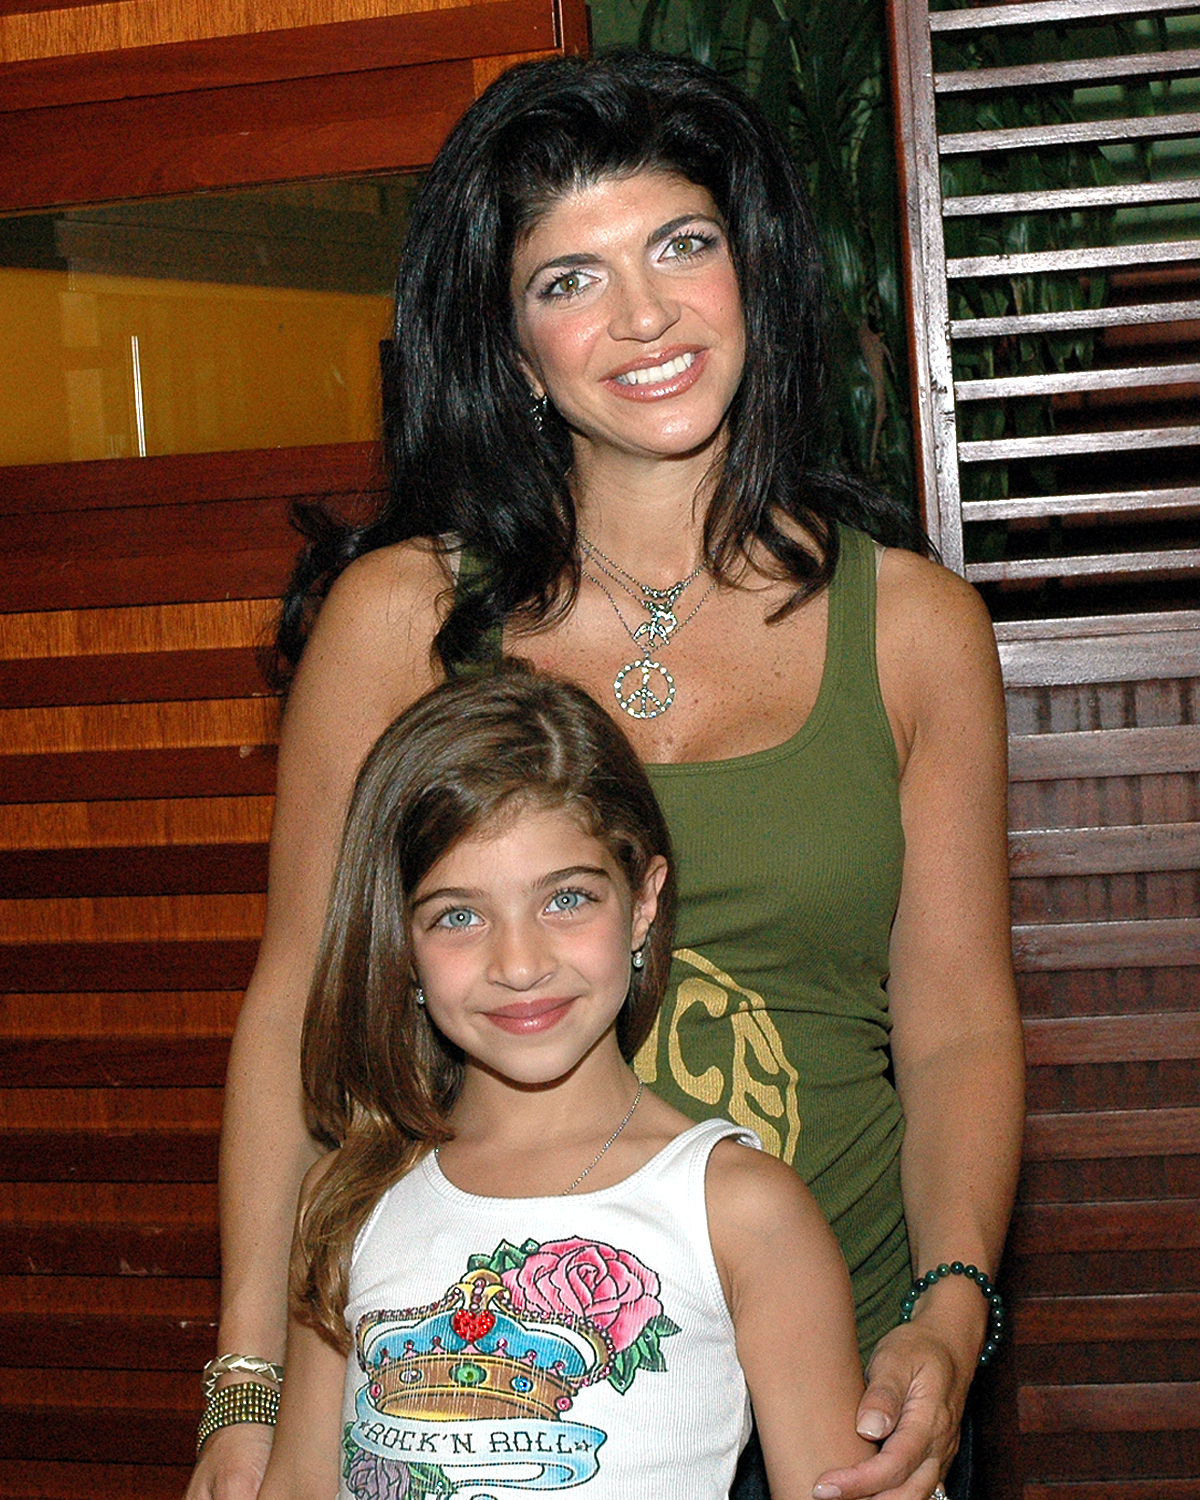 Teresa Giudice (The Real Housewives of New Jersey) with her daughter